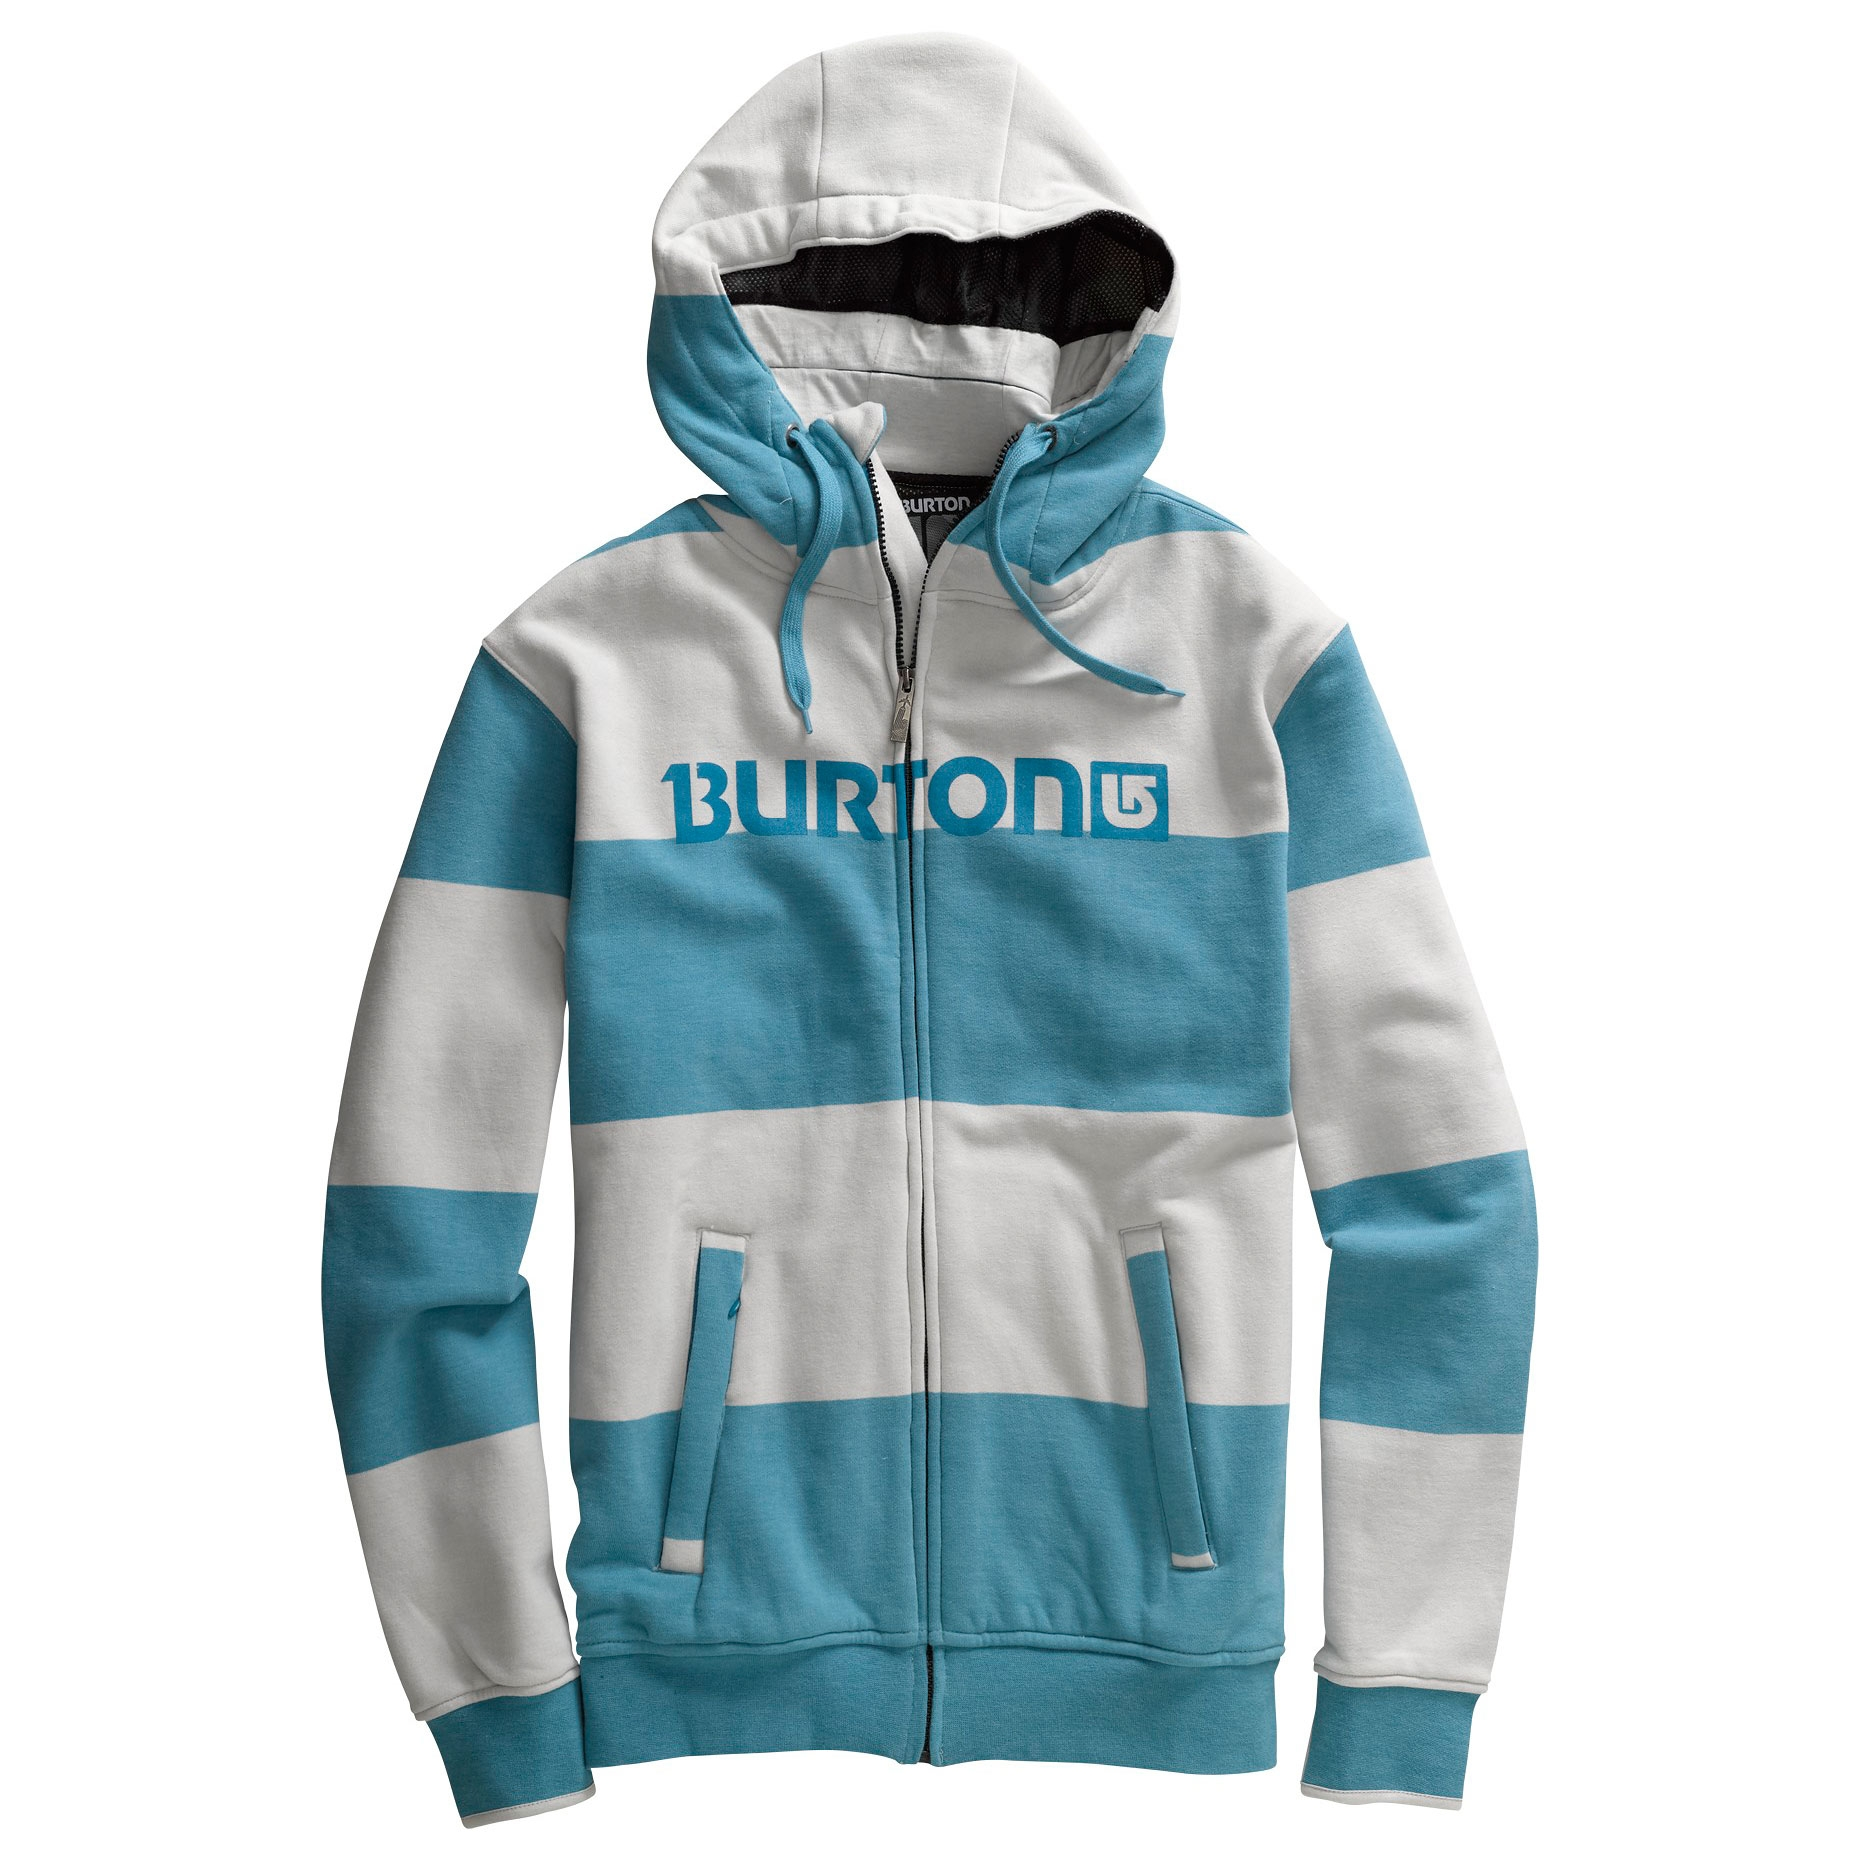 jp ja c sleeper sweatshirts burton s hoodie mens men hoodies snowboards